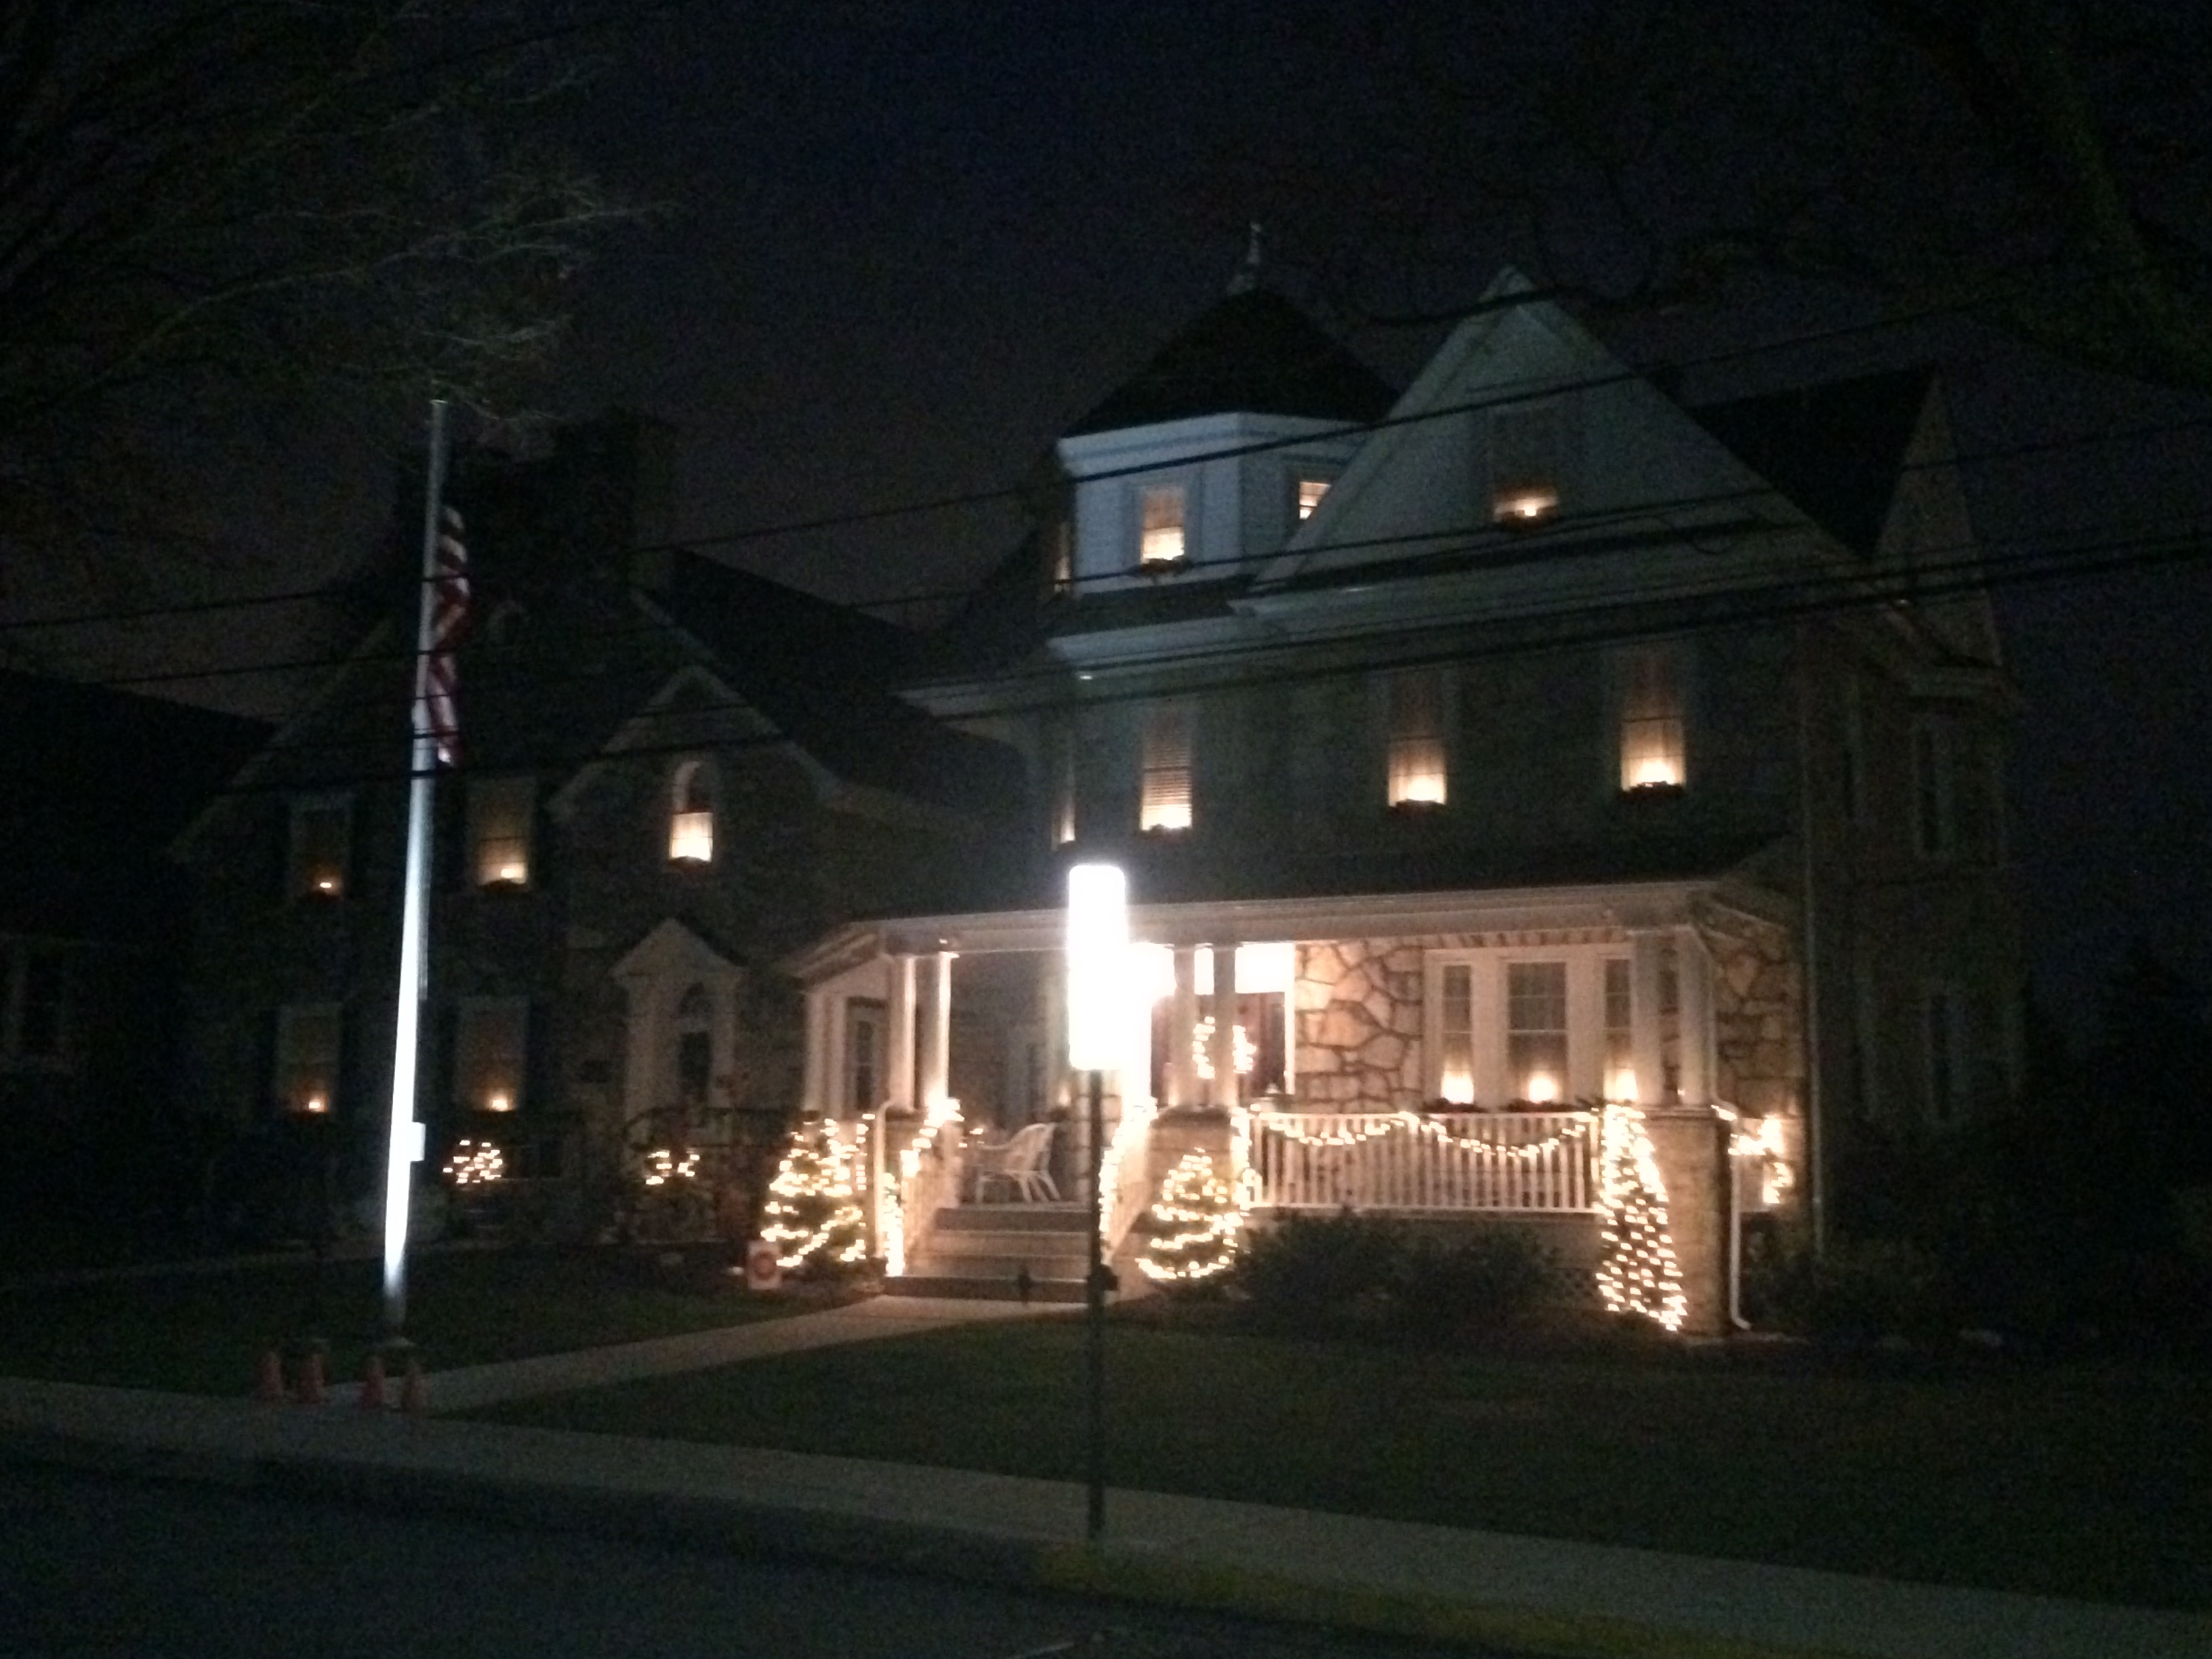 brighter homes lighting. A Photo Of The Mauger-Givnish Funeral Home Located In Malvern, PA All Lit Up With Beautiful Christmas Lights And Decorations. Brighter Homes Lighting